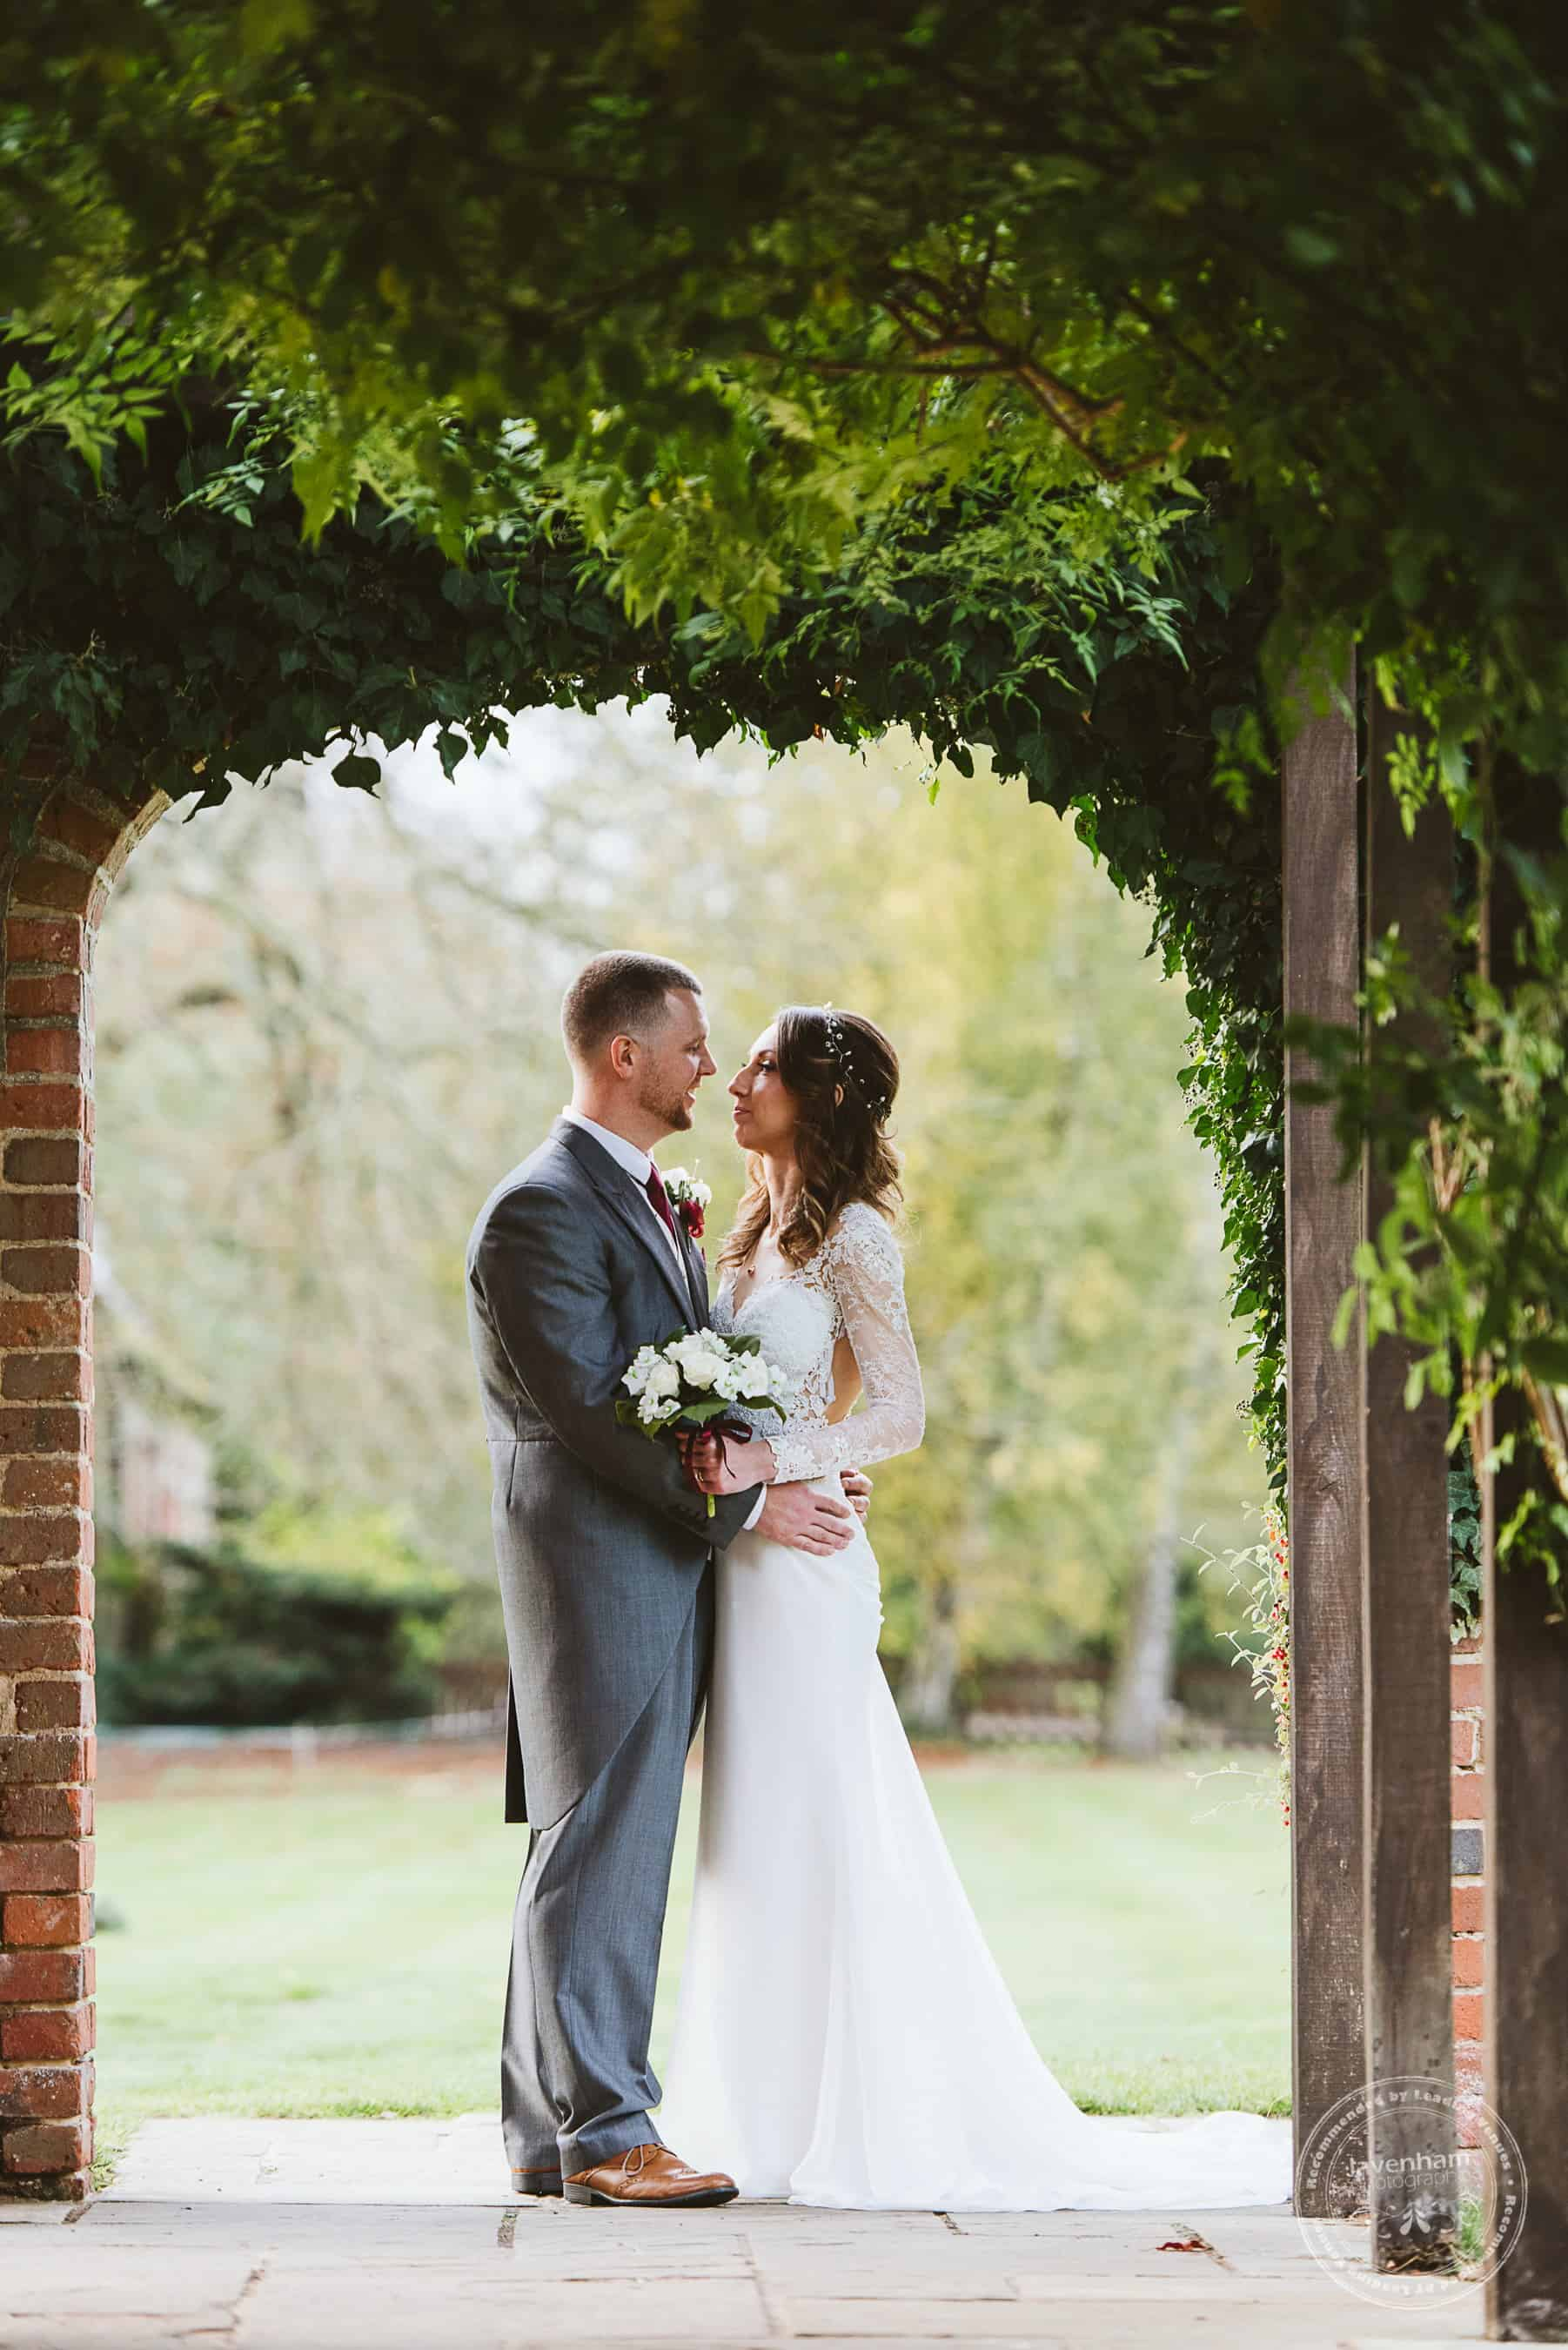 041118 Woodhall Manor Wedding Photography by Lavenham Photographic 089